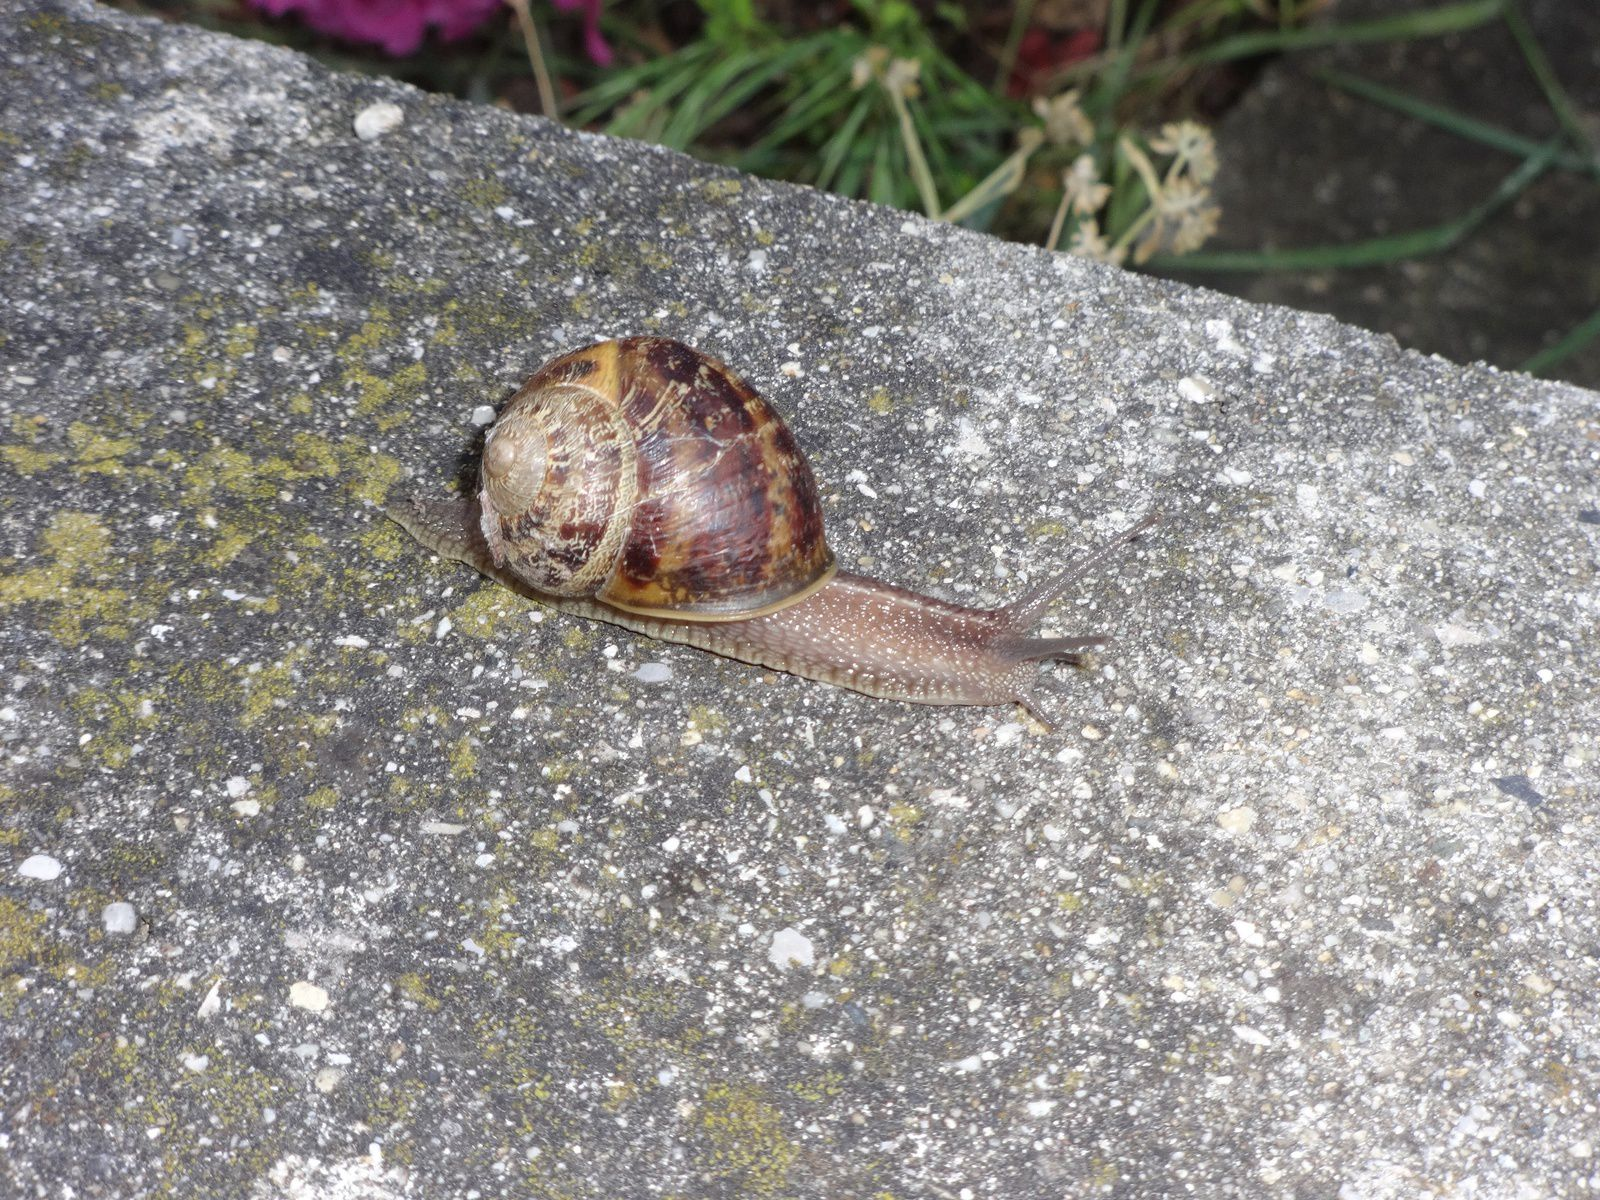 24 heures photo : Ouh, l'escargot...